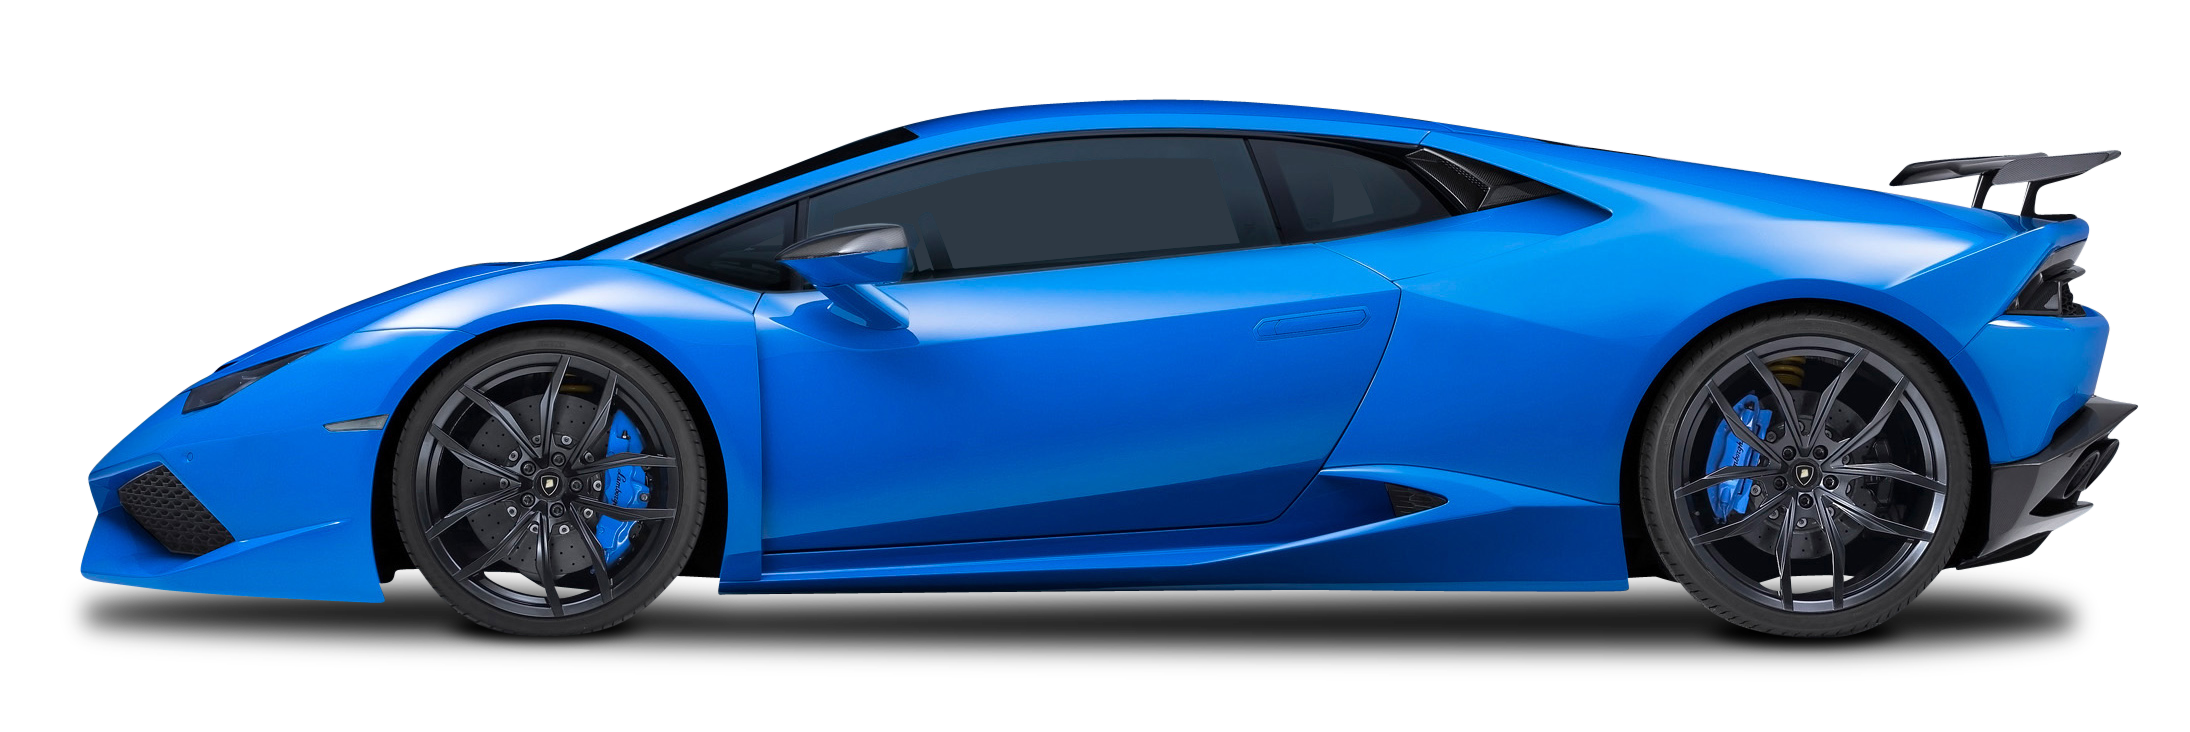 Library Of Lamborghini Car Graphic Transparent Library Png